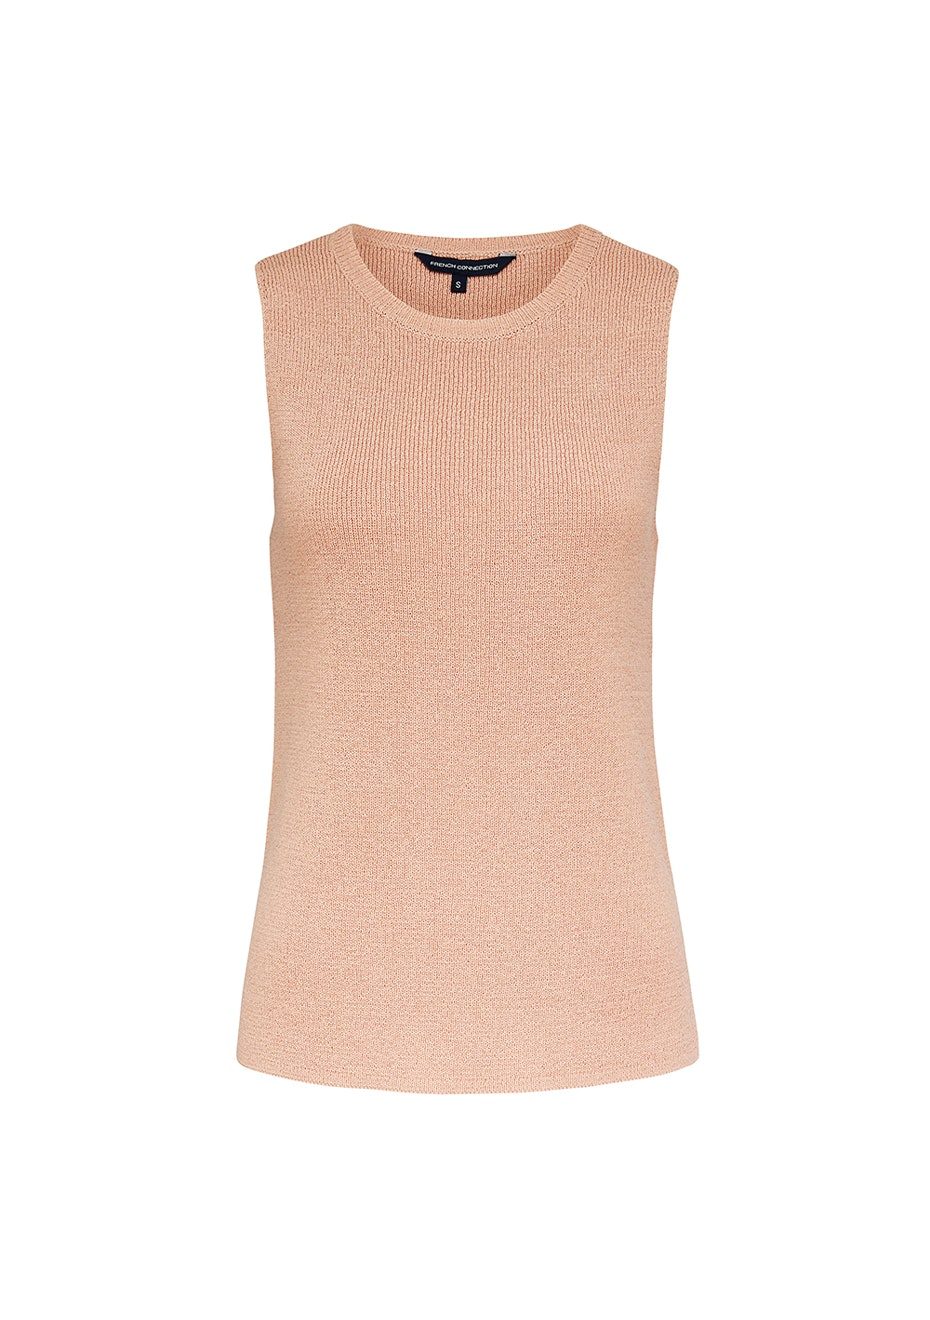 French Connection - Knit Tank - Dusty Pink